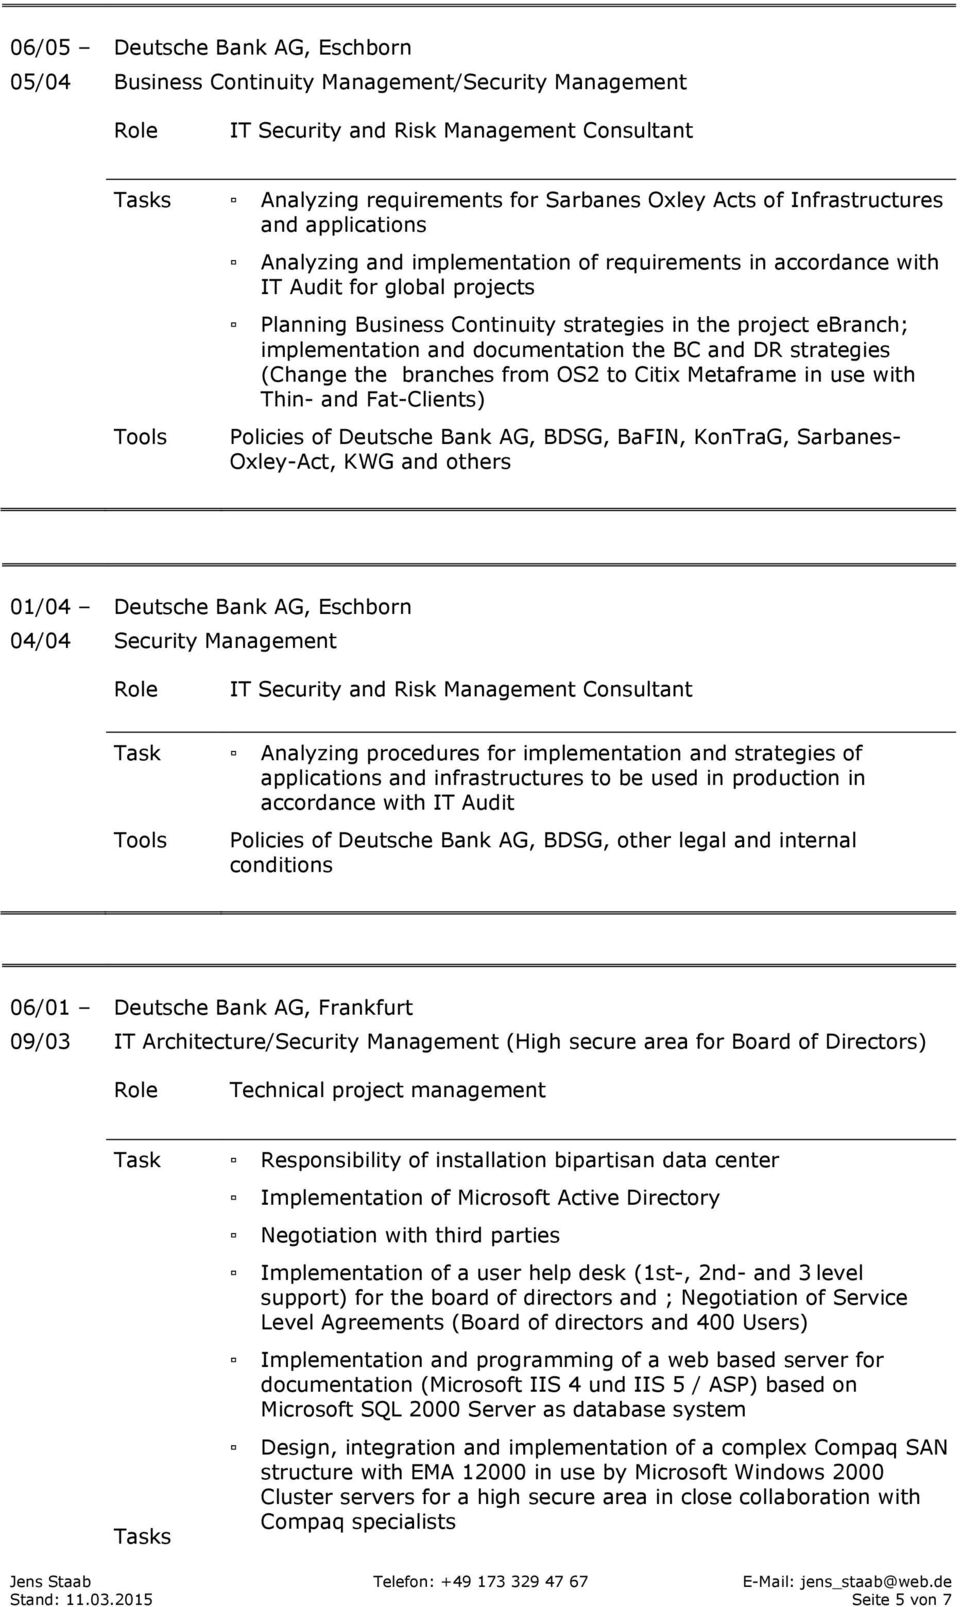 and DR strategies (Change the branches from OS2 to Citix Metaframe in use with Thin- and Fat-Clients) Oxley-Act, KWG and others 01/04 04/04 Security Management IT Security and Risk Management